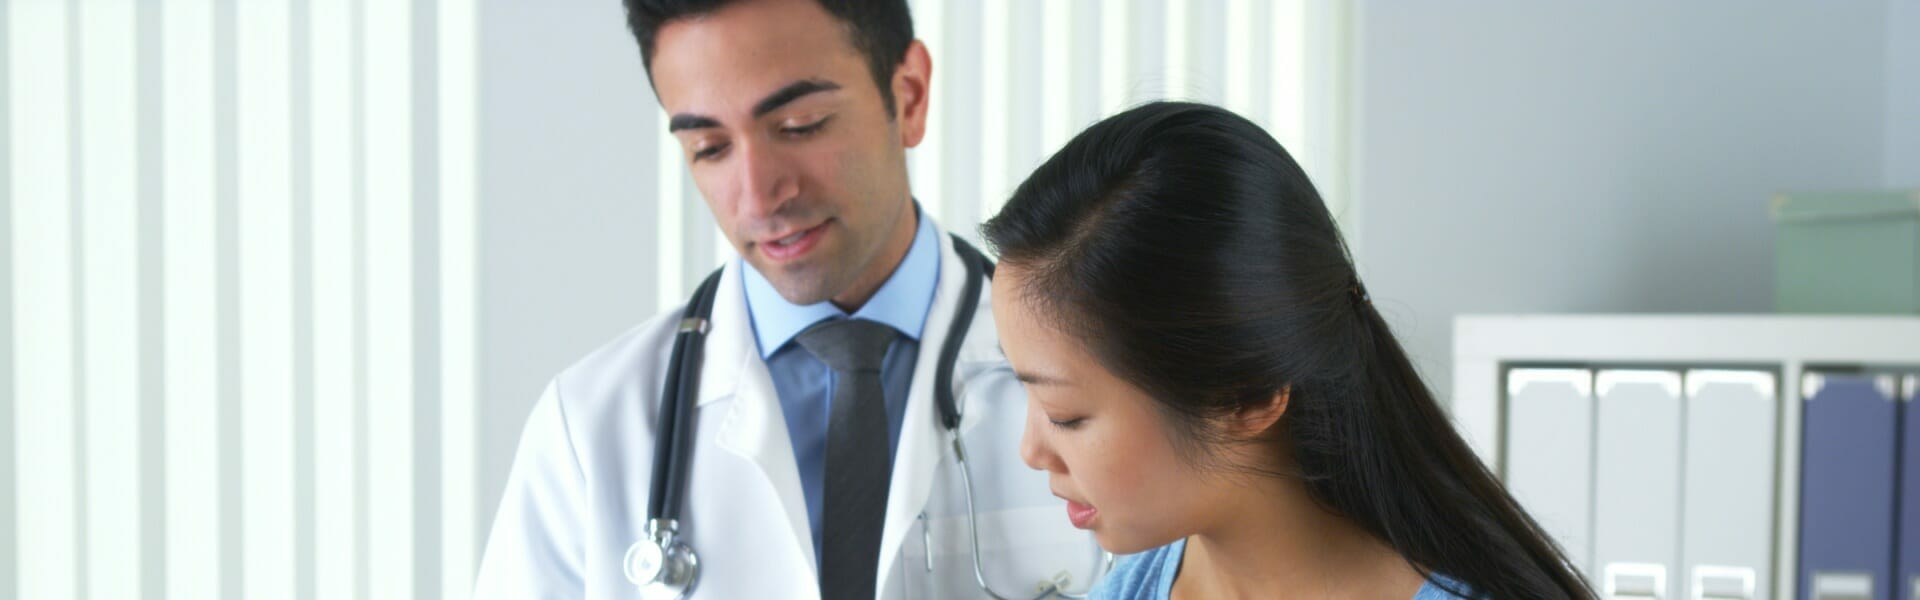 A male healthcare professional speaking with a female patient